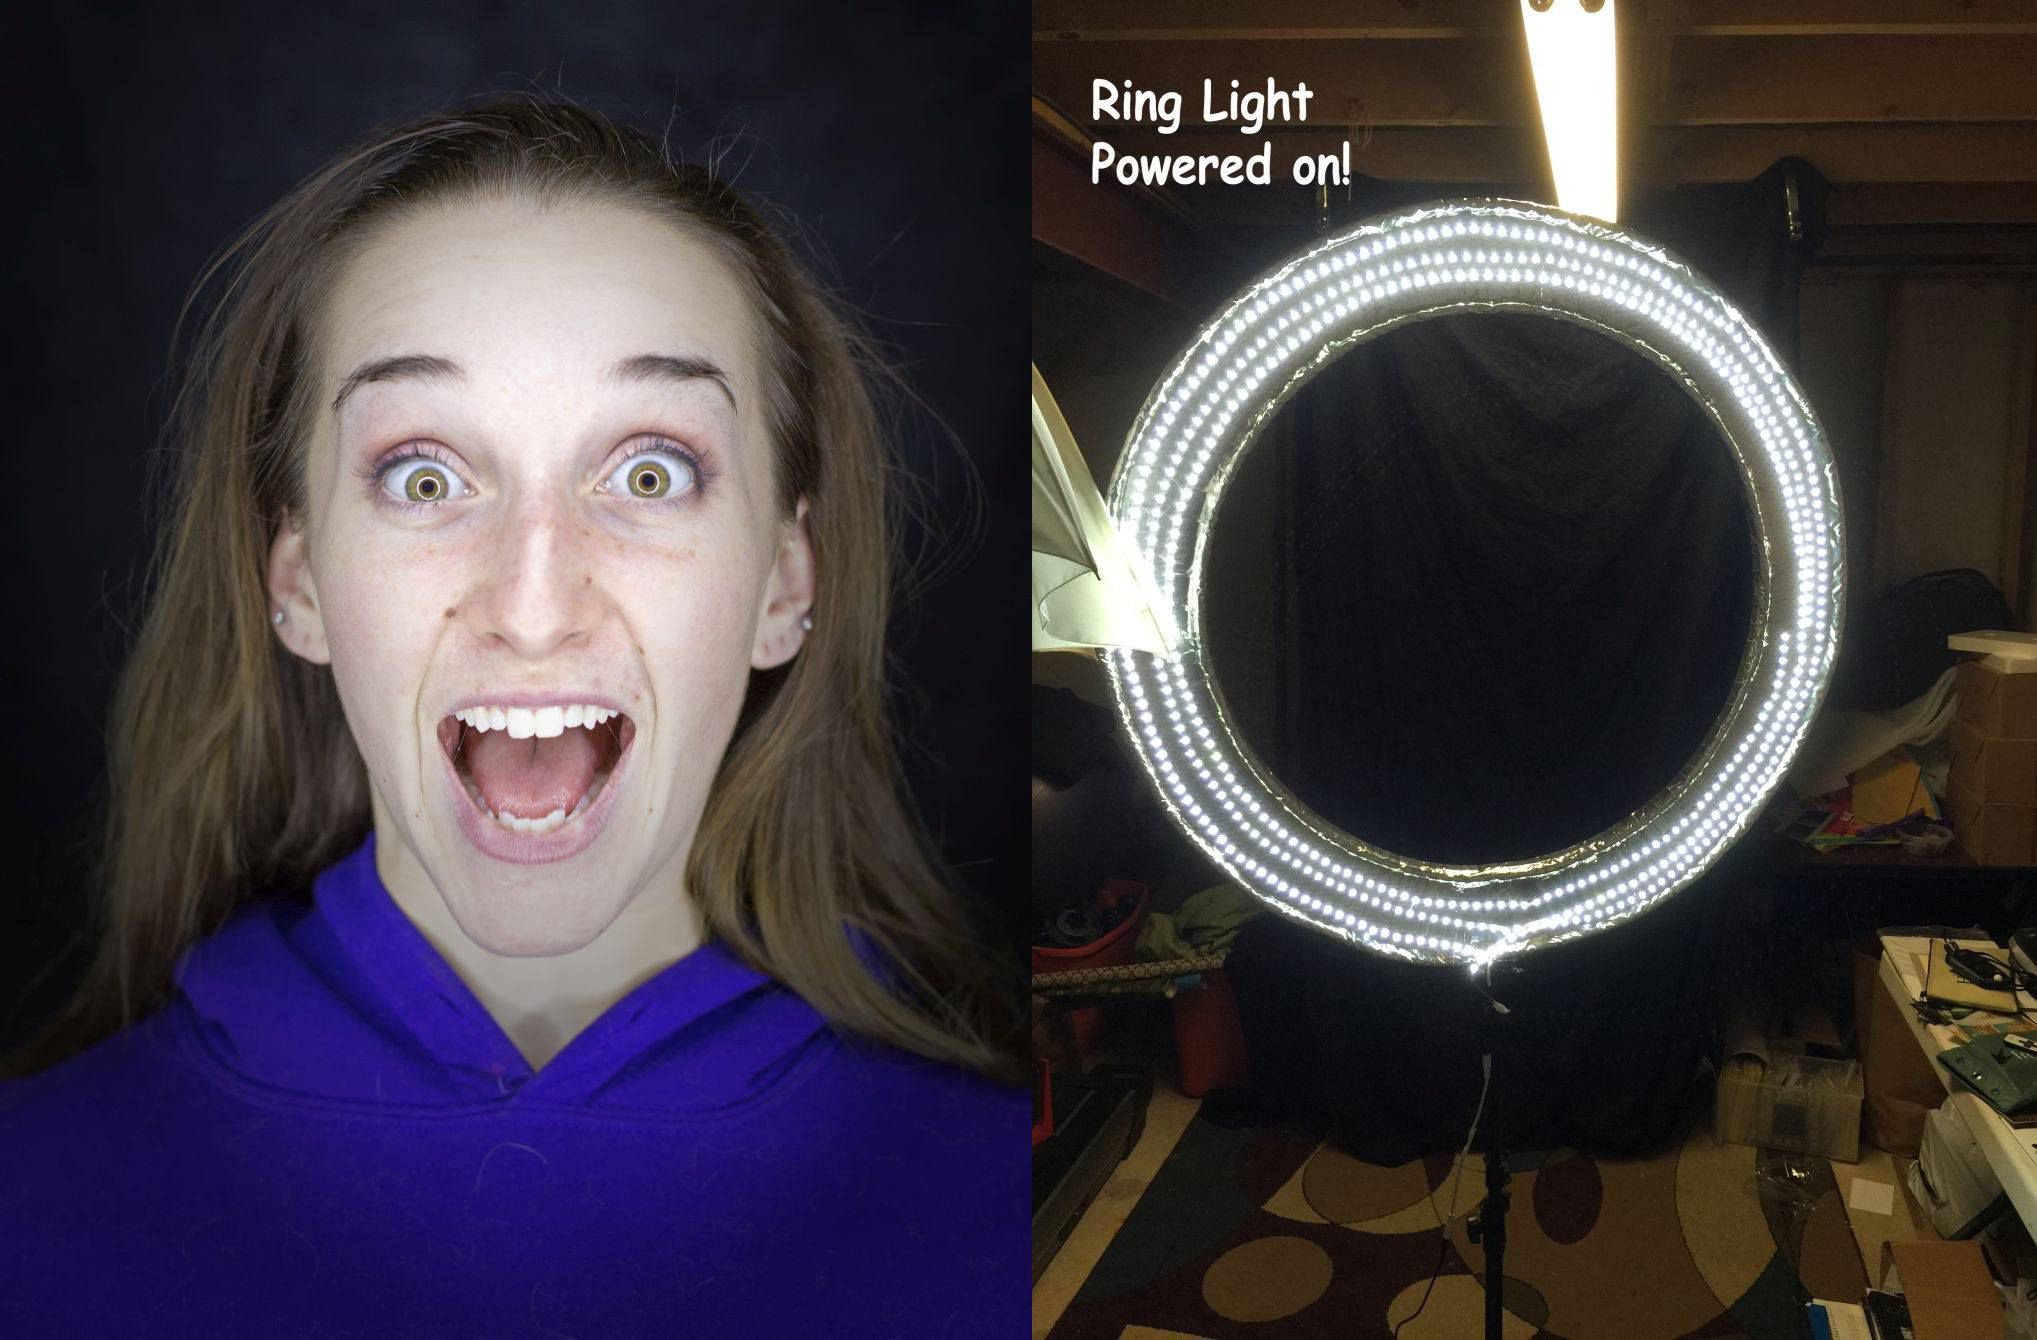 Best ideas about DIY Led Ring Light . Save or Pin How to build a DIY LED ring light a pictorial DIY Now.